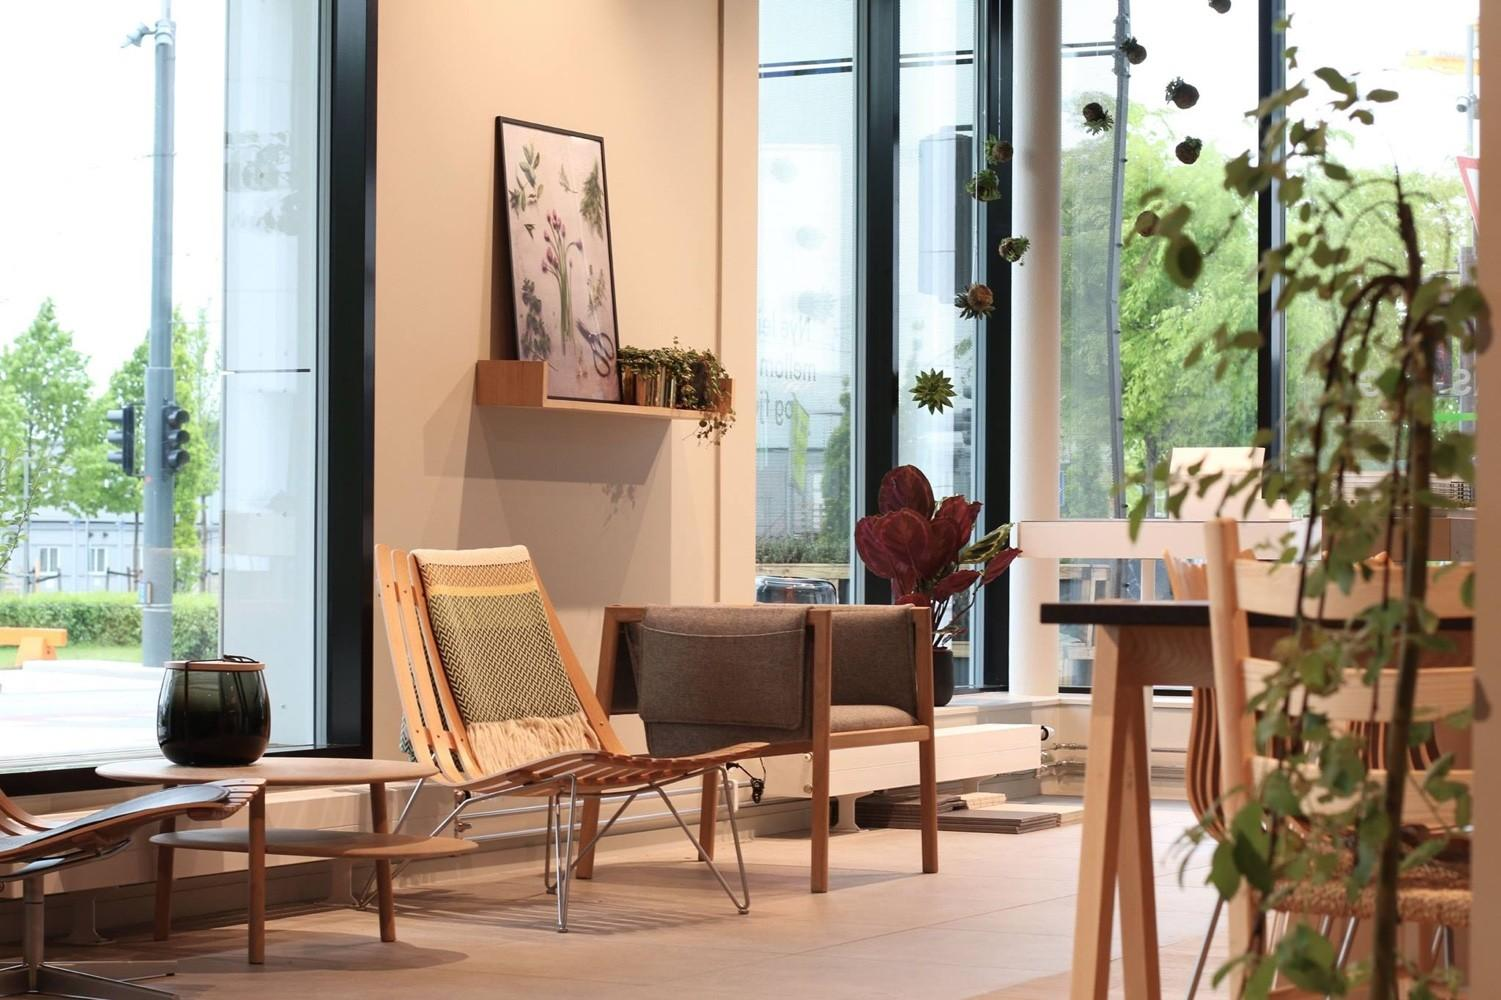 Examples Norway Making Design Strides